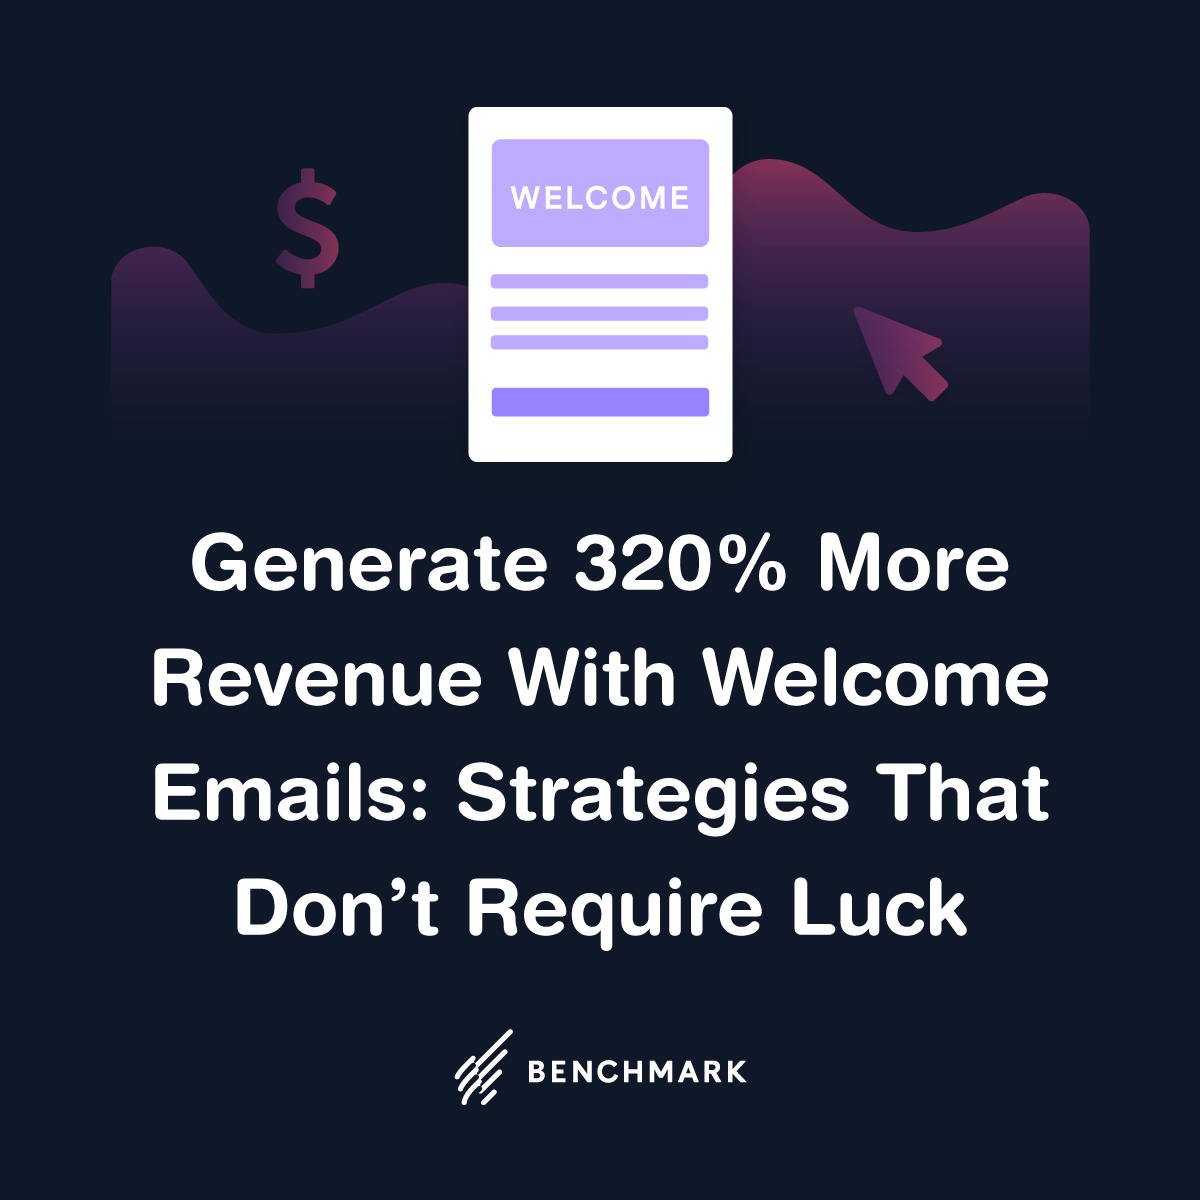 Generate 320% More Revenue With Welcome Emails: Strategies That Don't Require Luck